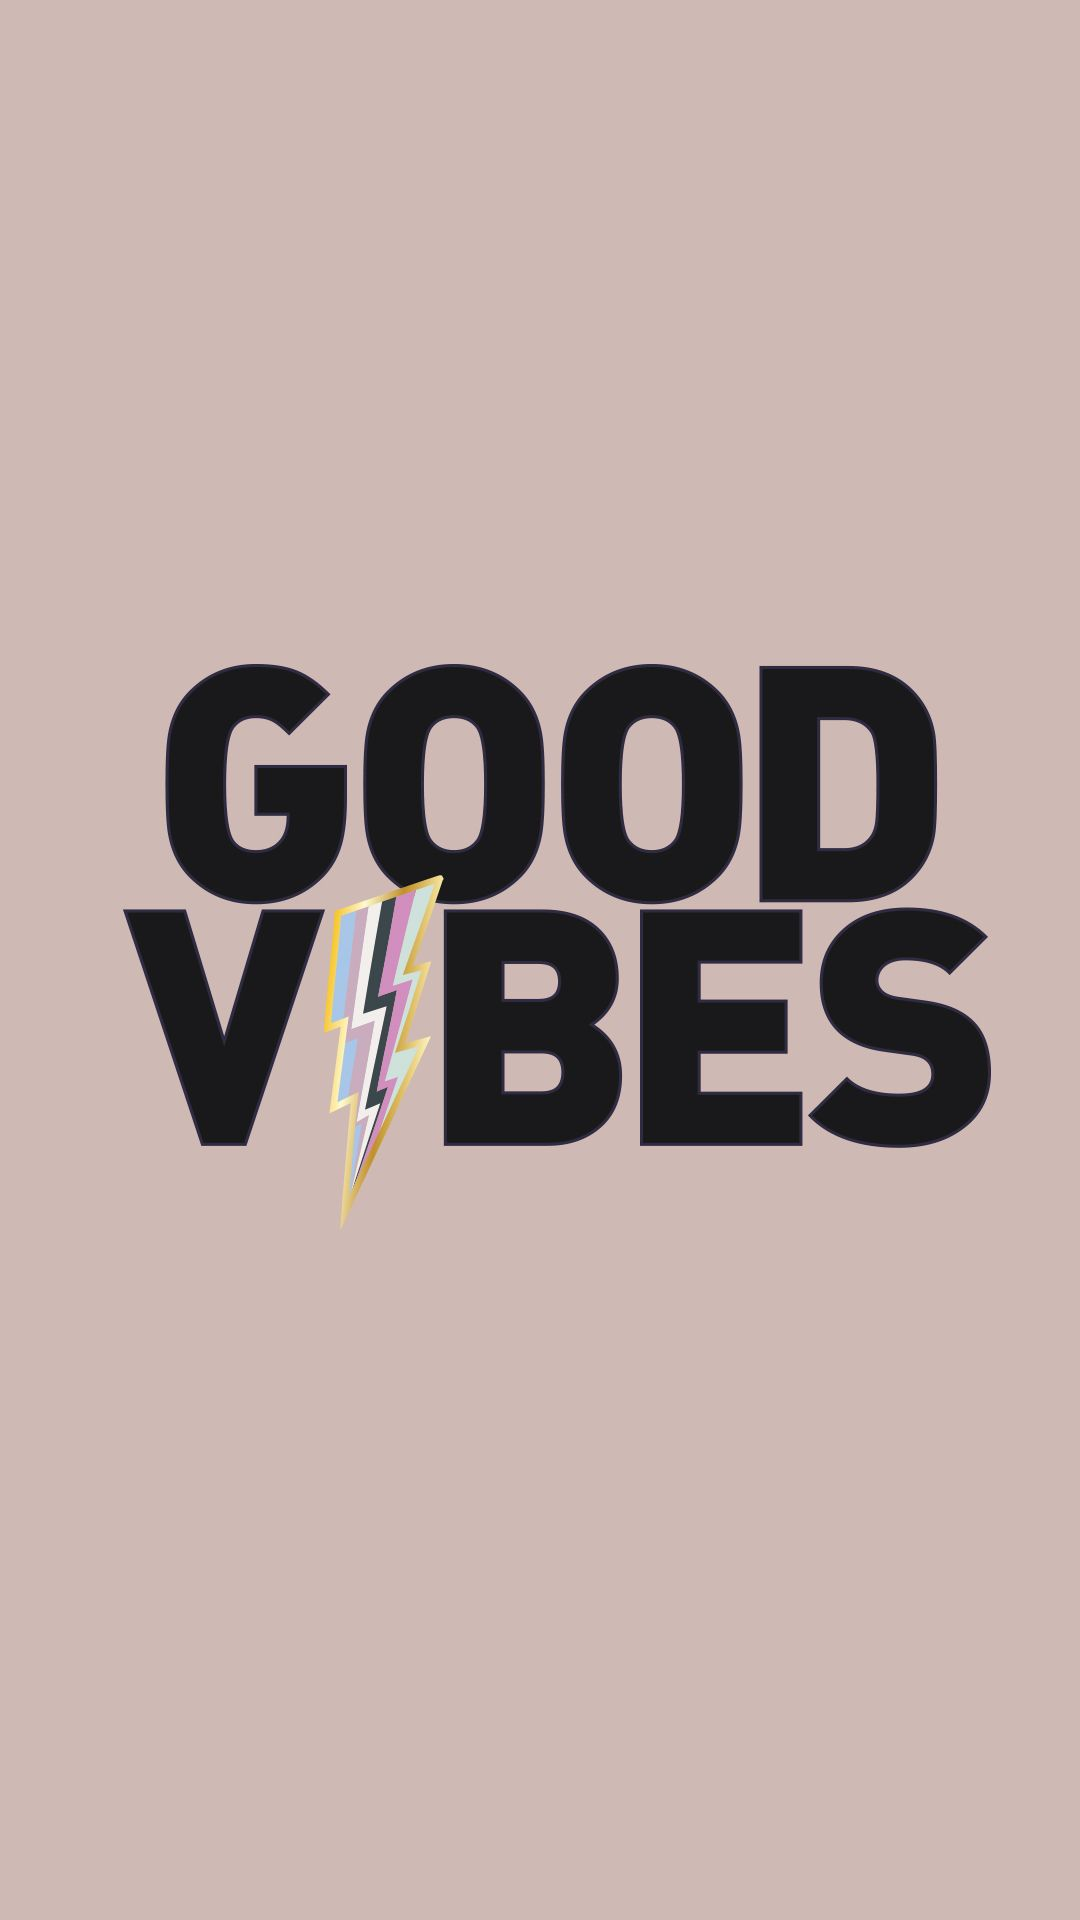 Pin By Fabiola Vilchez On Fabiola Vilchez Quote Free Good Vibes Wallpaper Good Vibes Only New Quotes